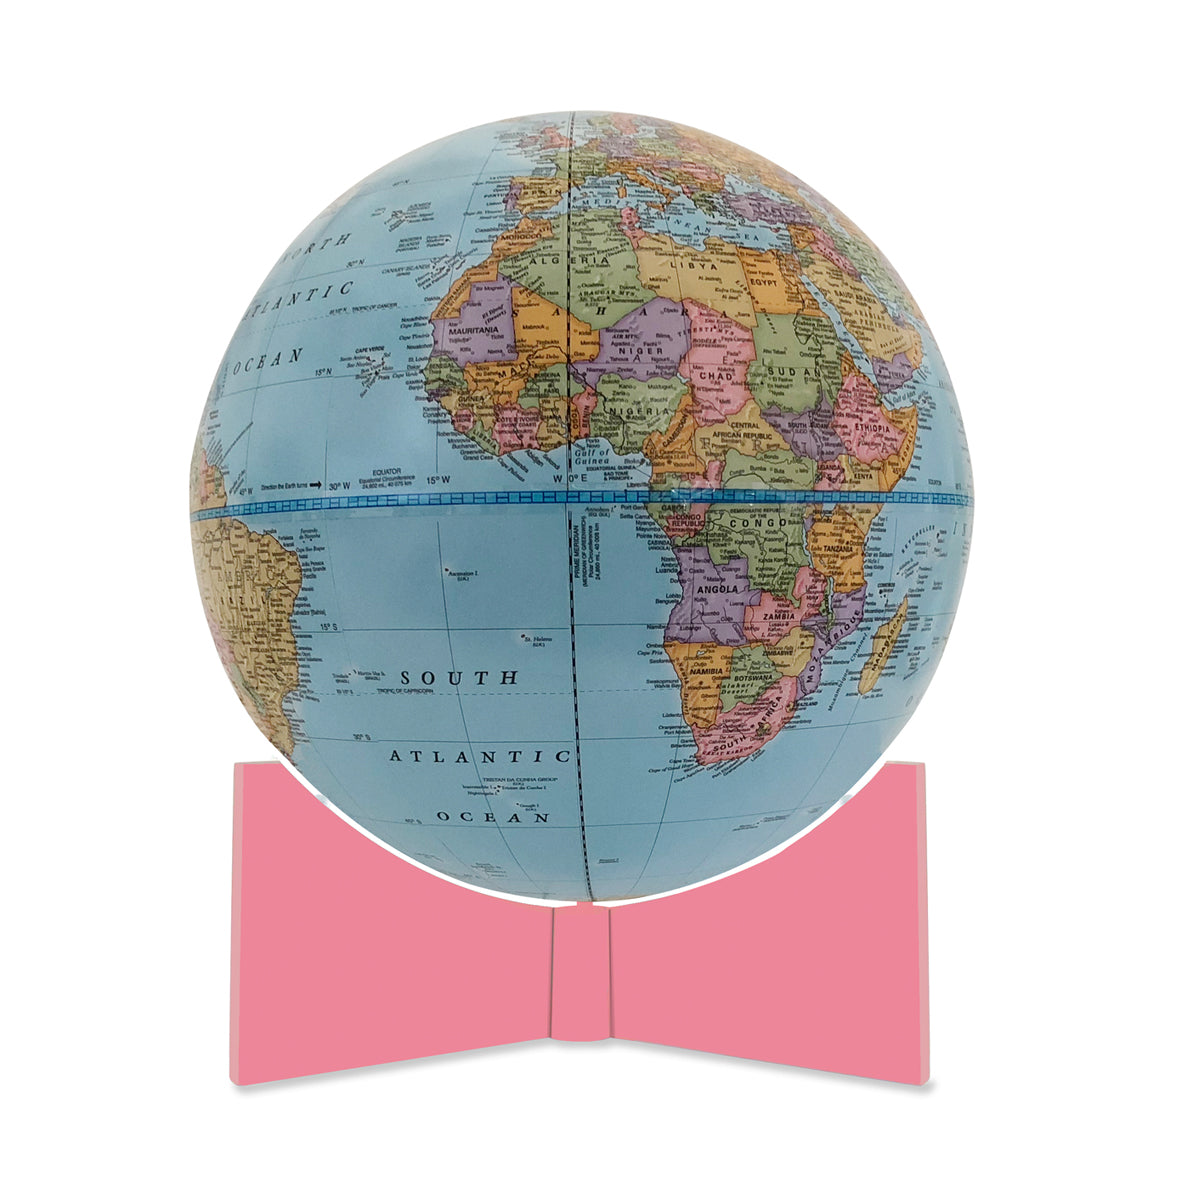 Small Blue Handheld World Globe-pink base